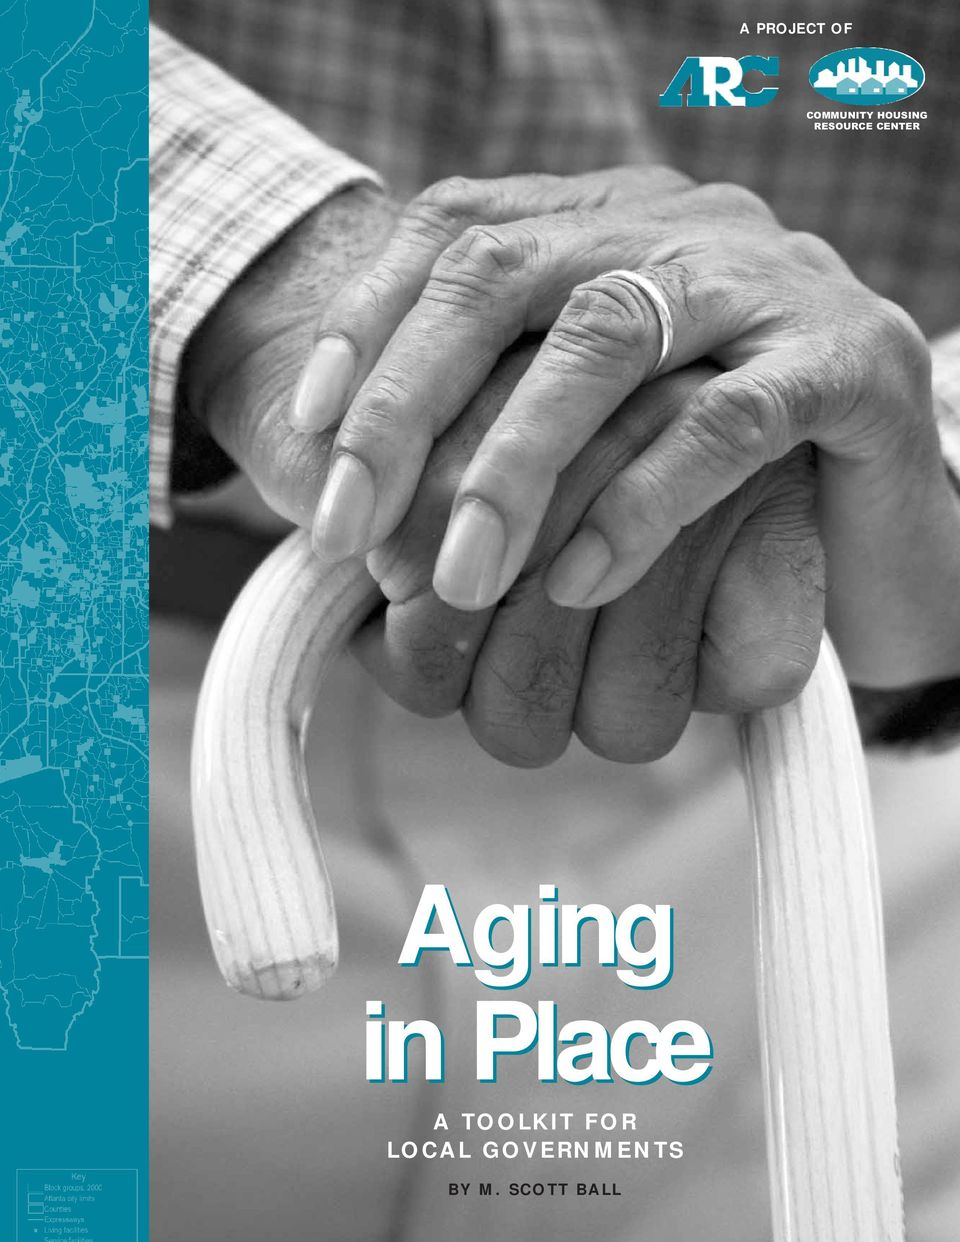 Aging in Place A TOOLKIT